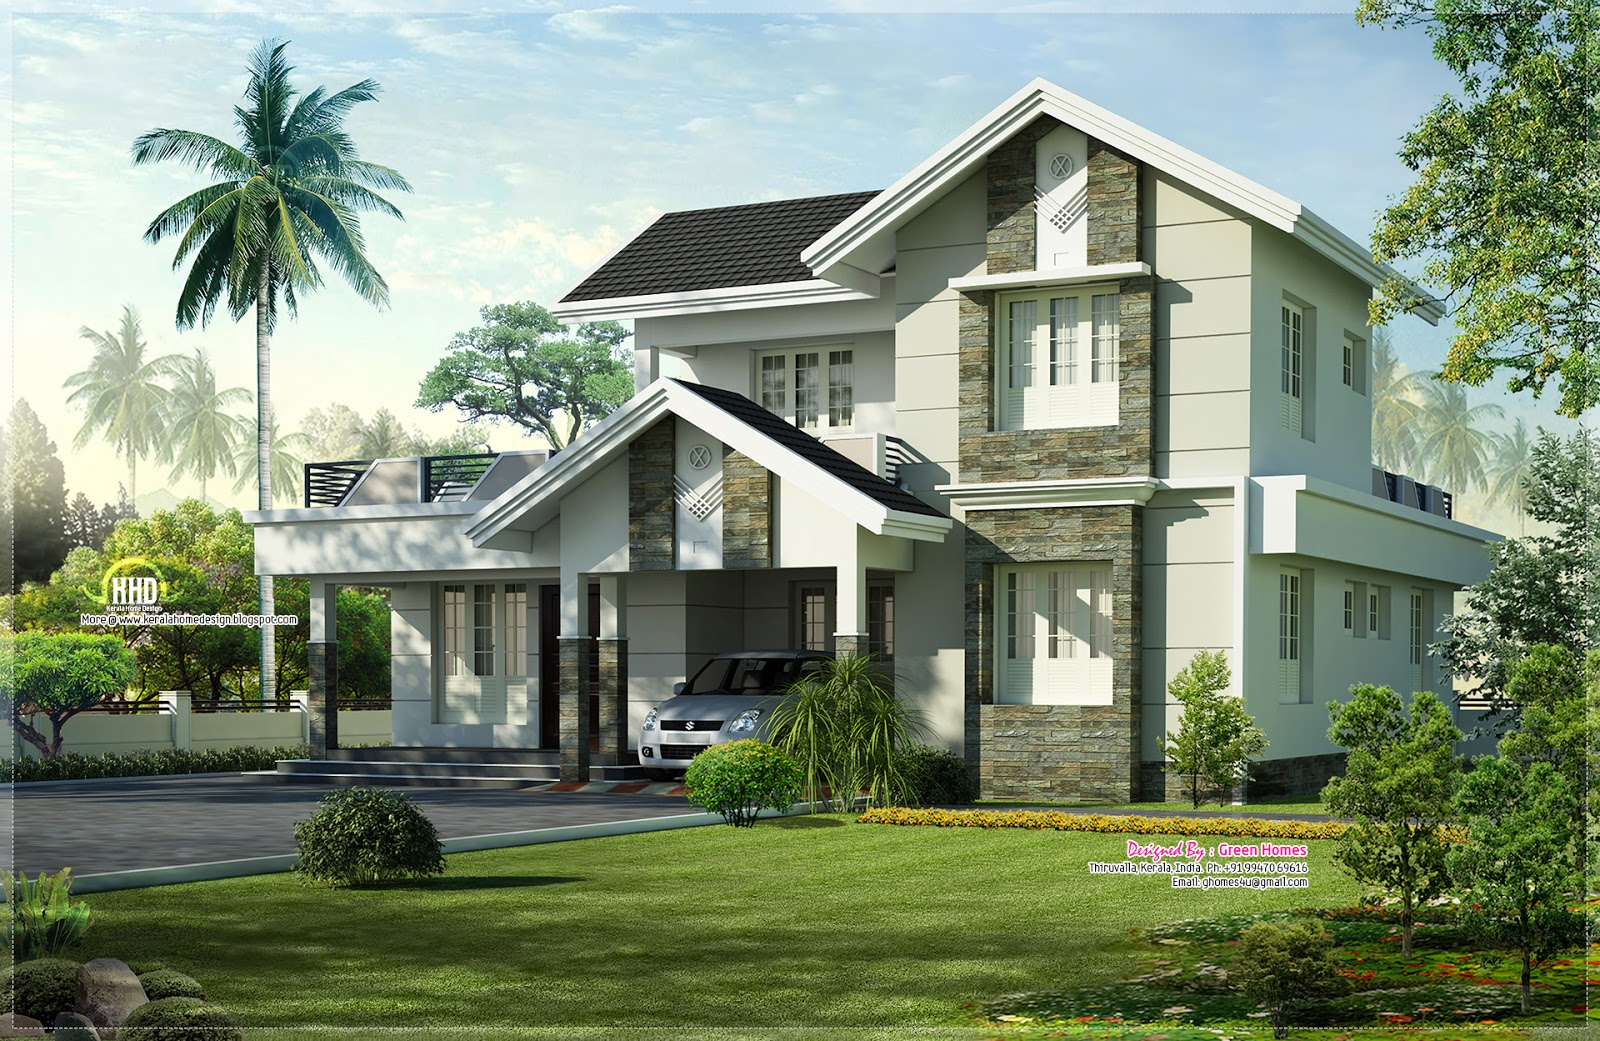 1975 nice home exterior design kerala home